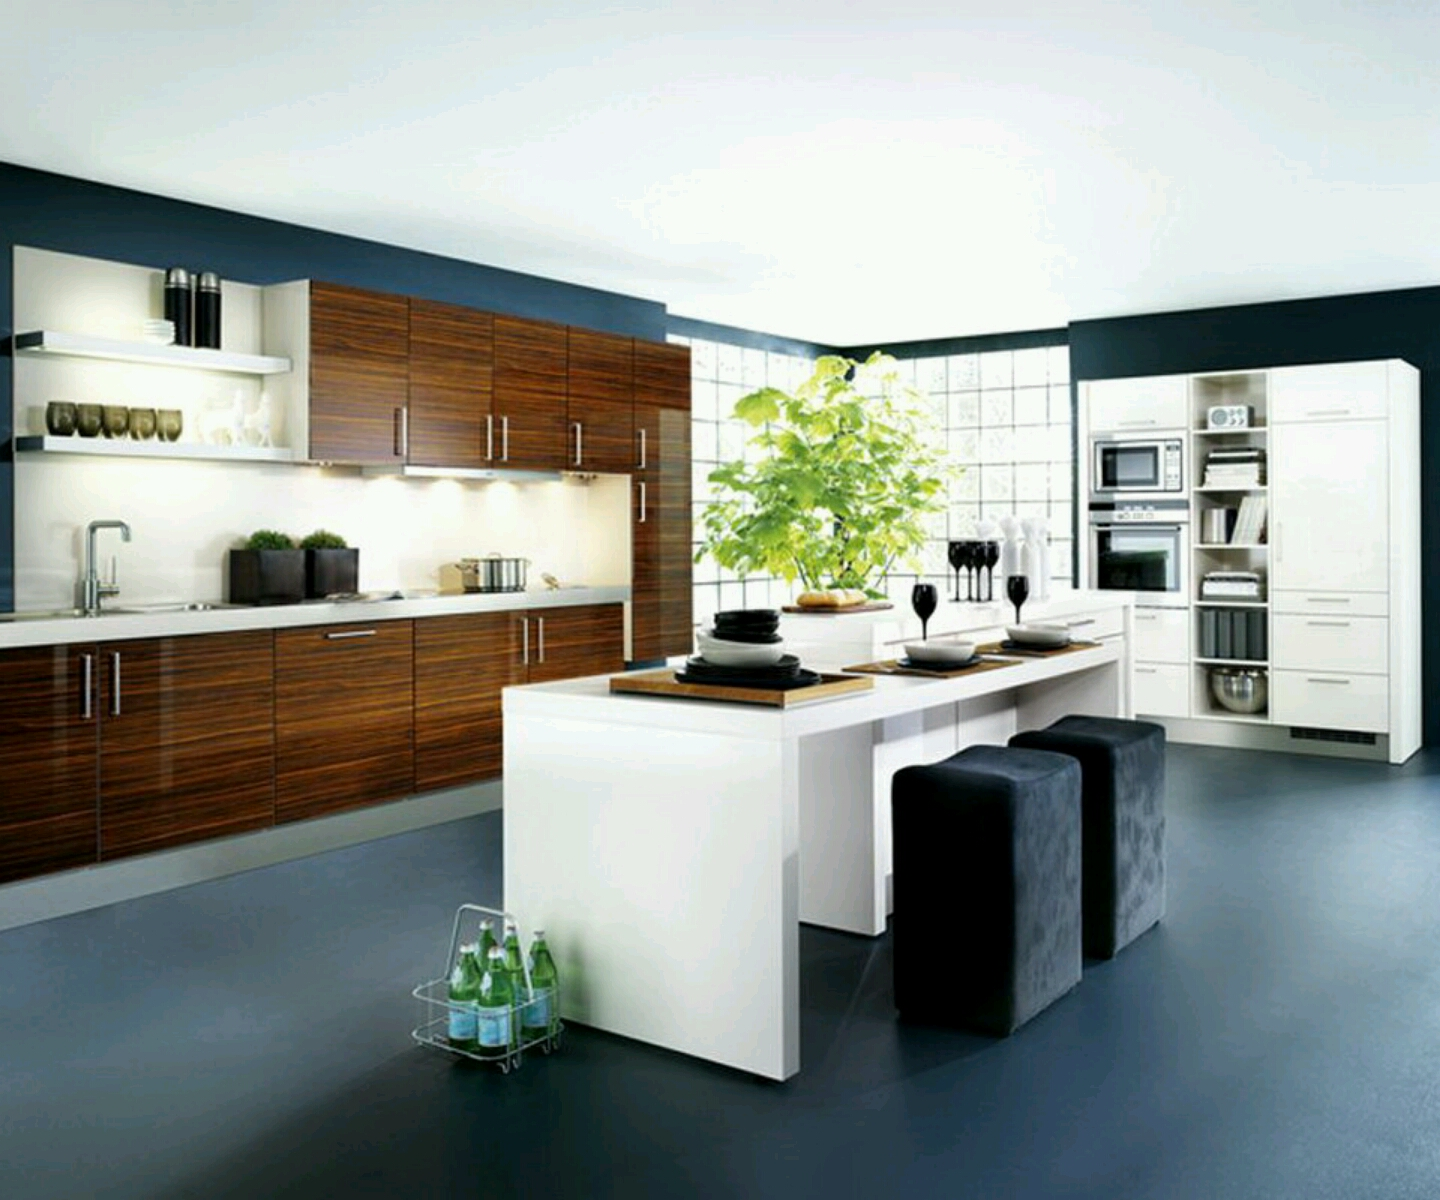 New home designs latest kitchen cabinets designs modern for New style kitchen cabinets